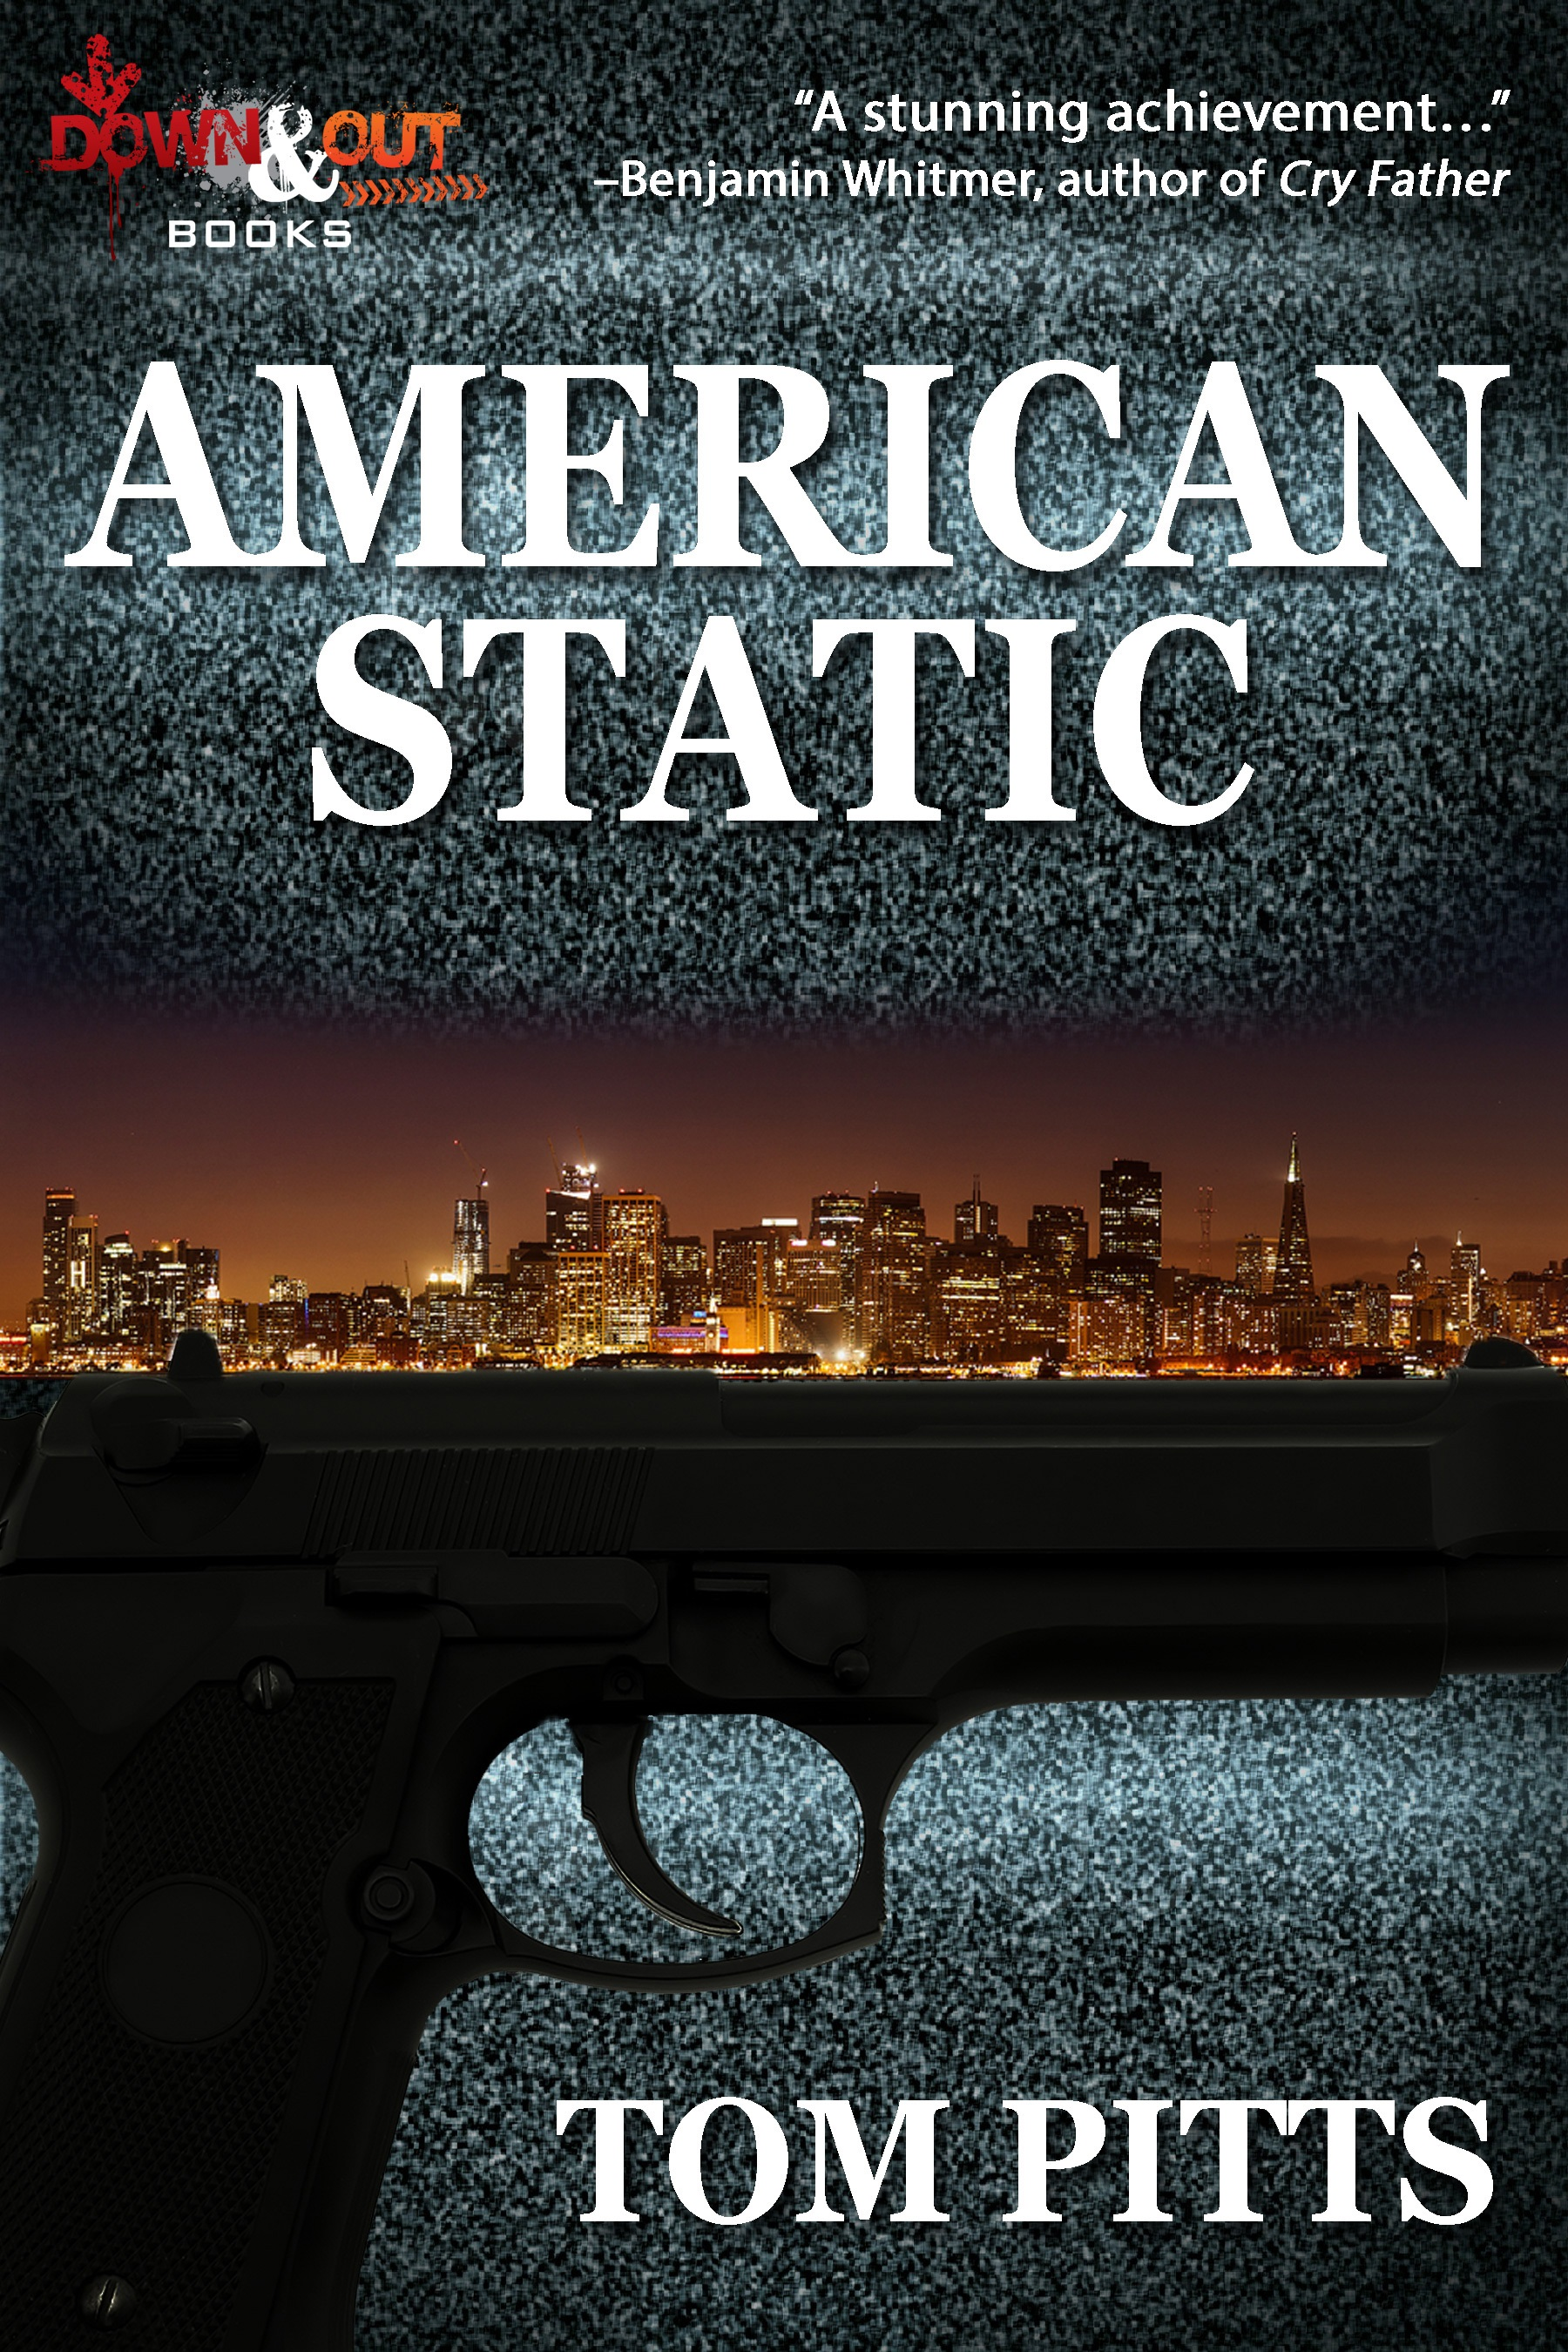 Tom Pitts cover-pitts-american-static-1800x2700px.jpg